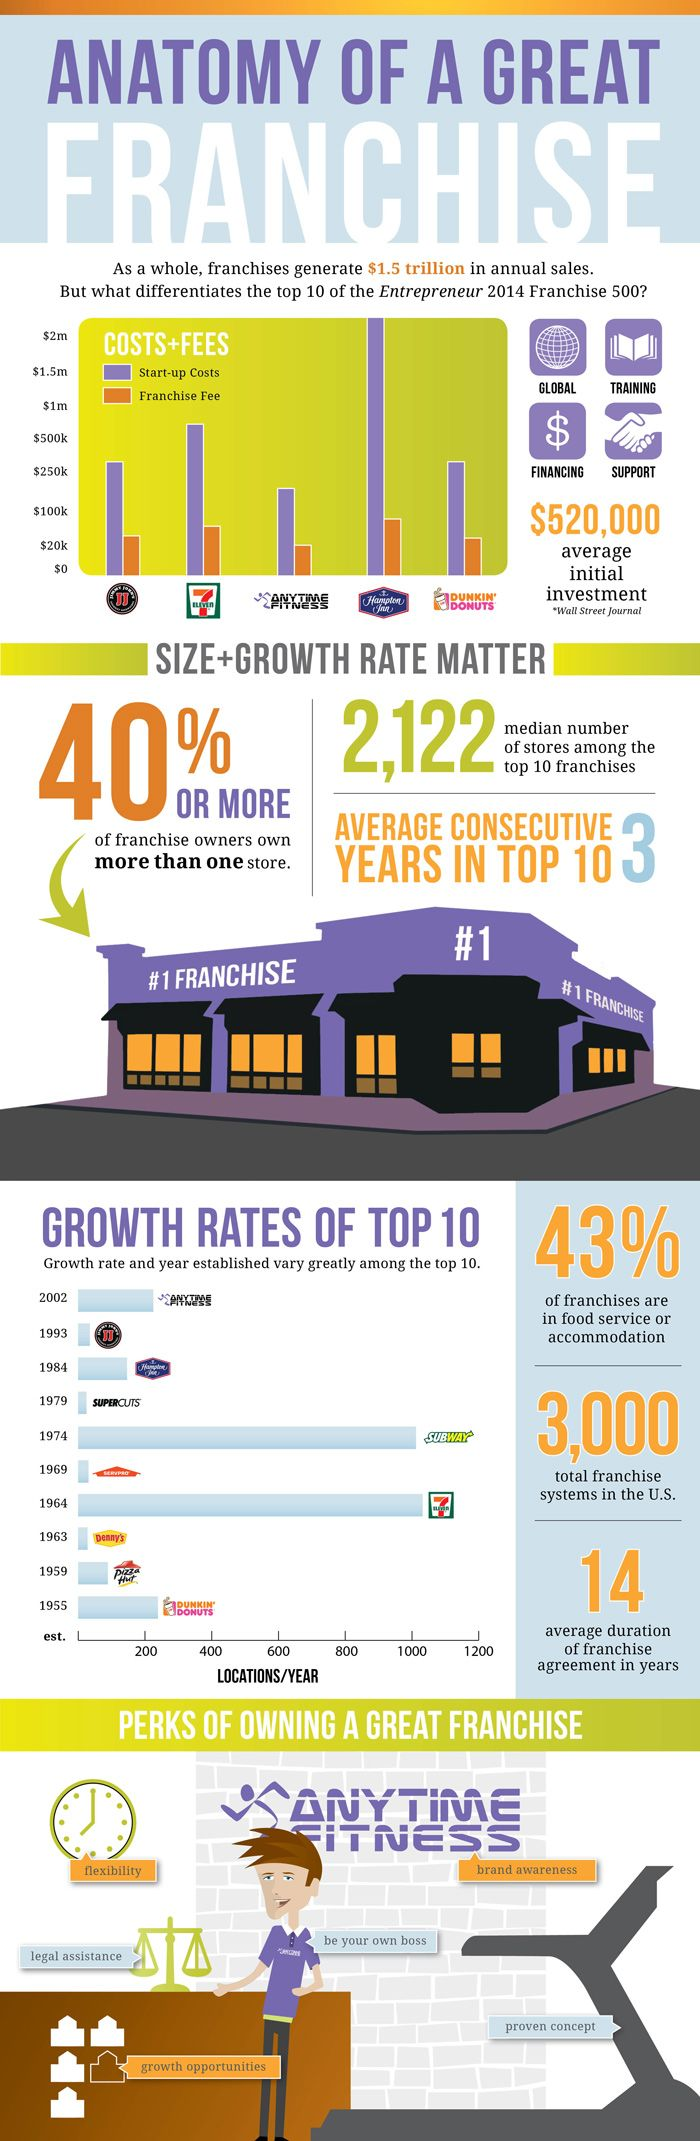 If you're thinking of starting a business, considering a franchise can be smart. Let's take a look at Entrepreneur's Franchise 500 top 10 franchises for some insight!